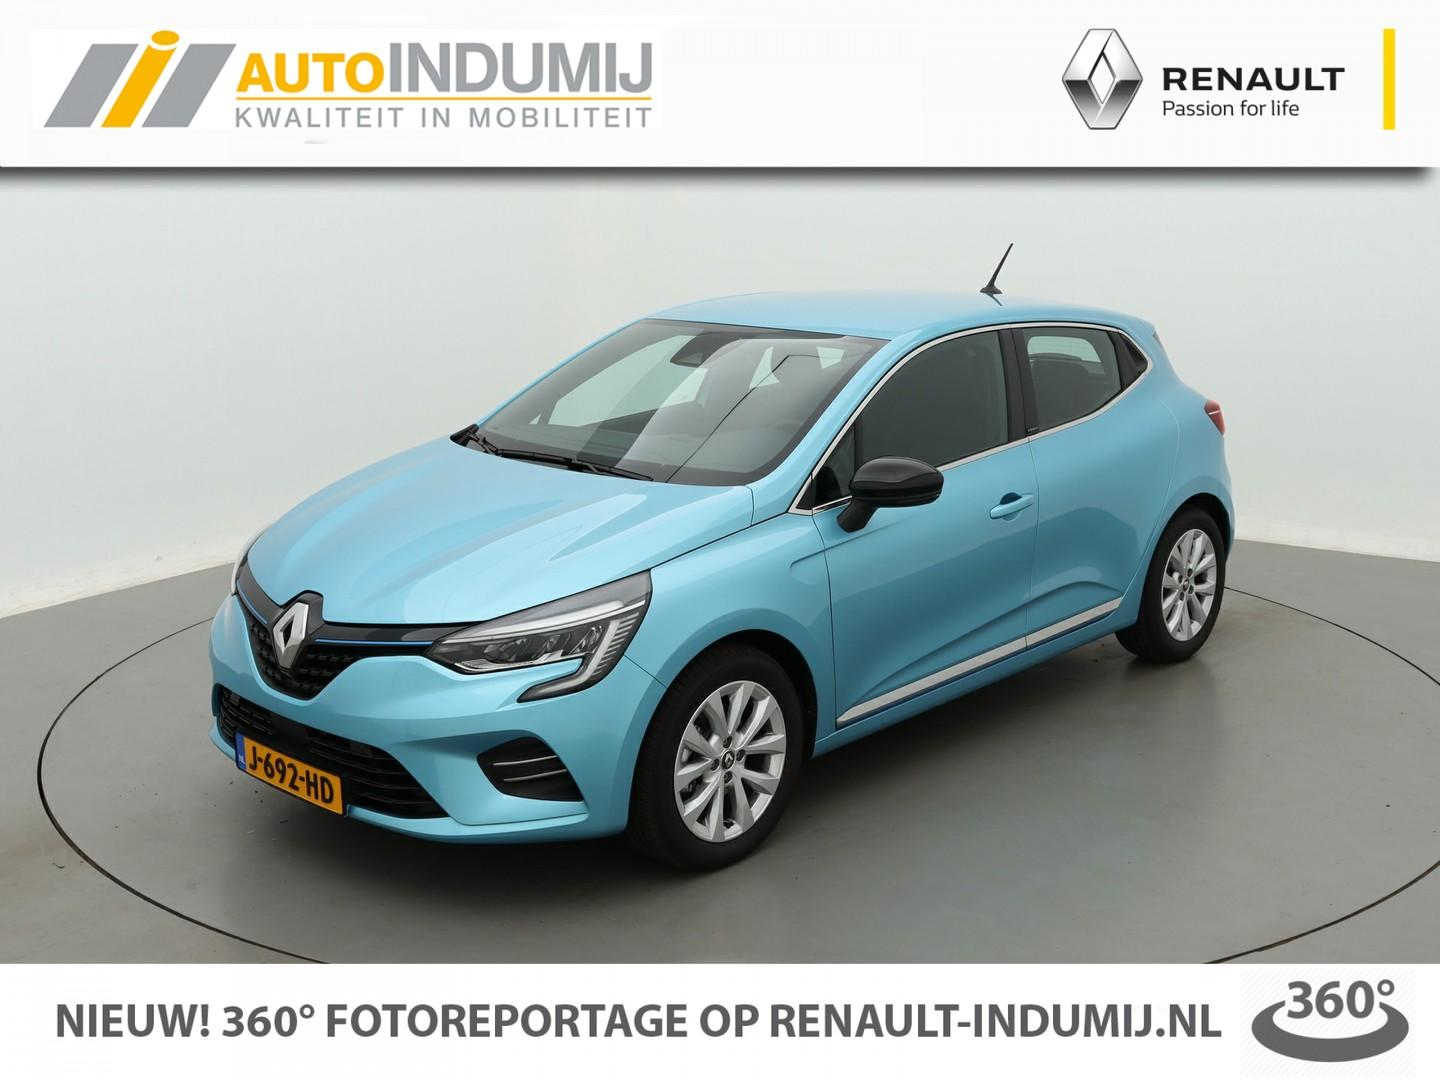 Renault Clio 1.6 hybrid intens automaat / demo voordeel! // camera / apple carplay / android auto / climate control